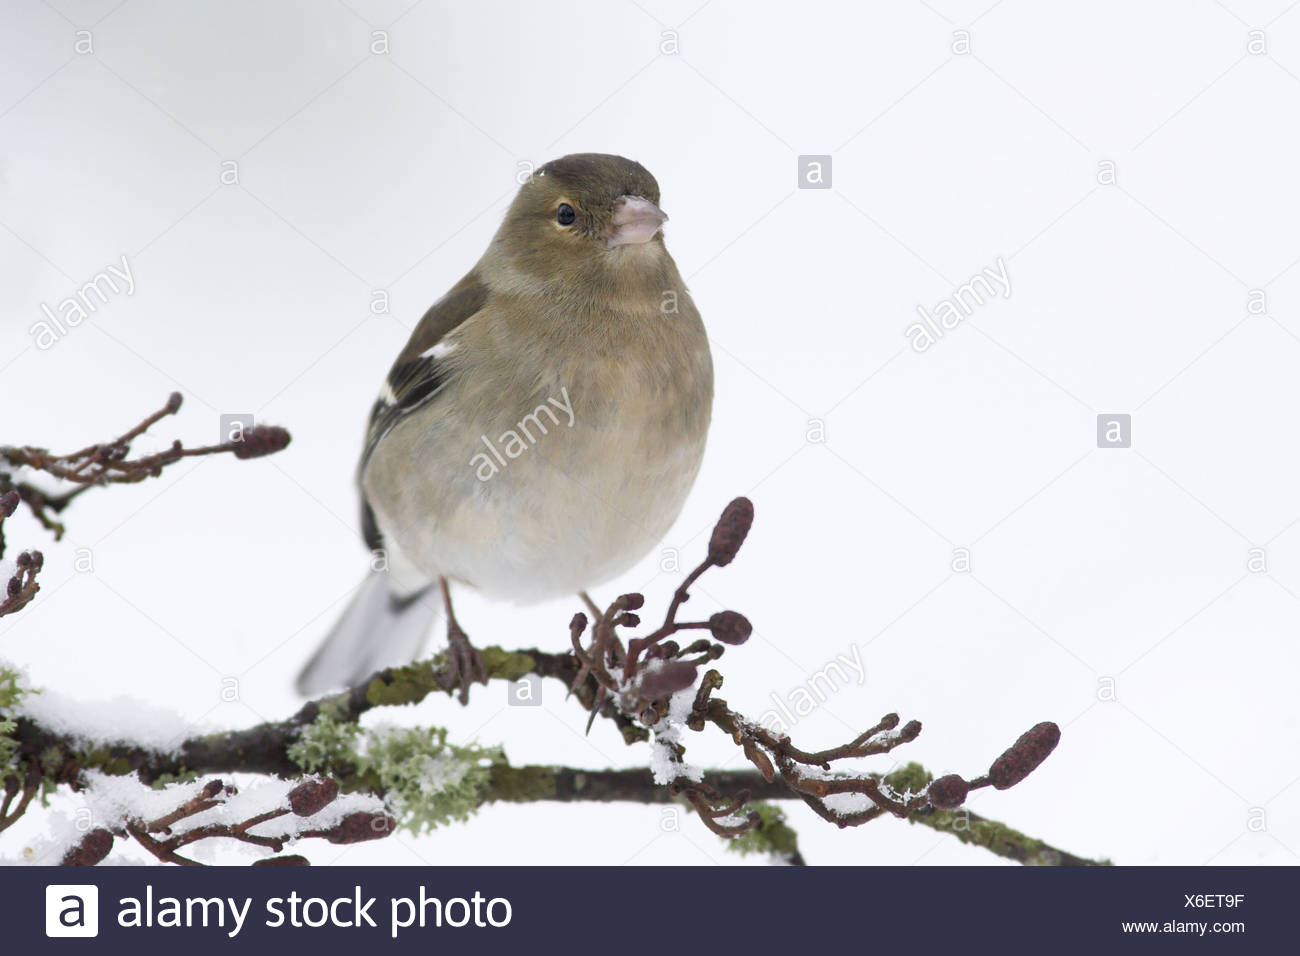 Chaffinch (Fringilla coelebs) adult female, perched on snow covered twig, in garden, Berwickshire, Scotland, winter - Stock Image